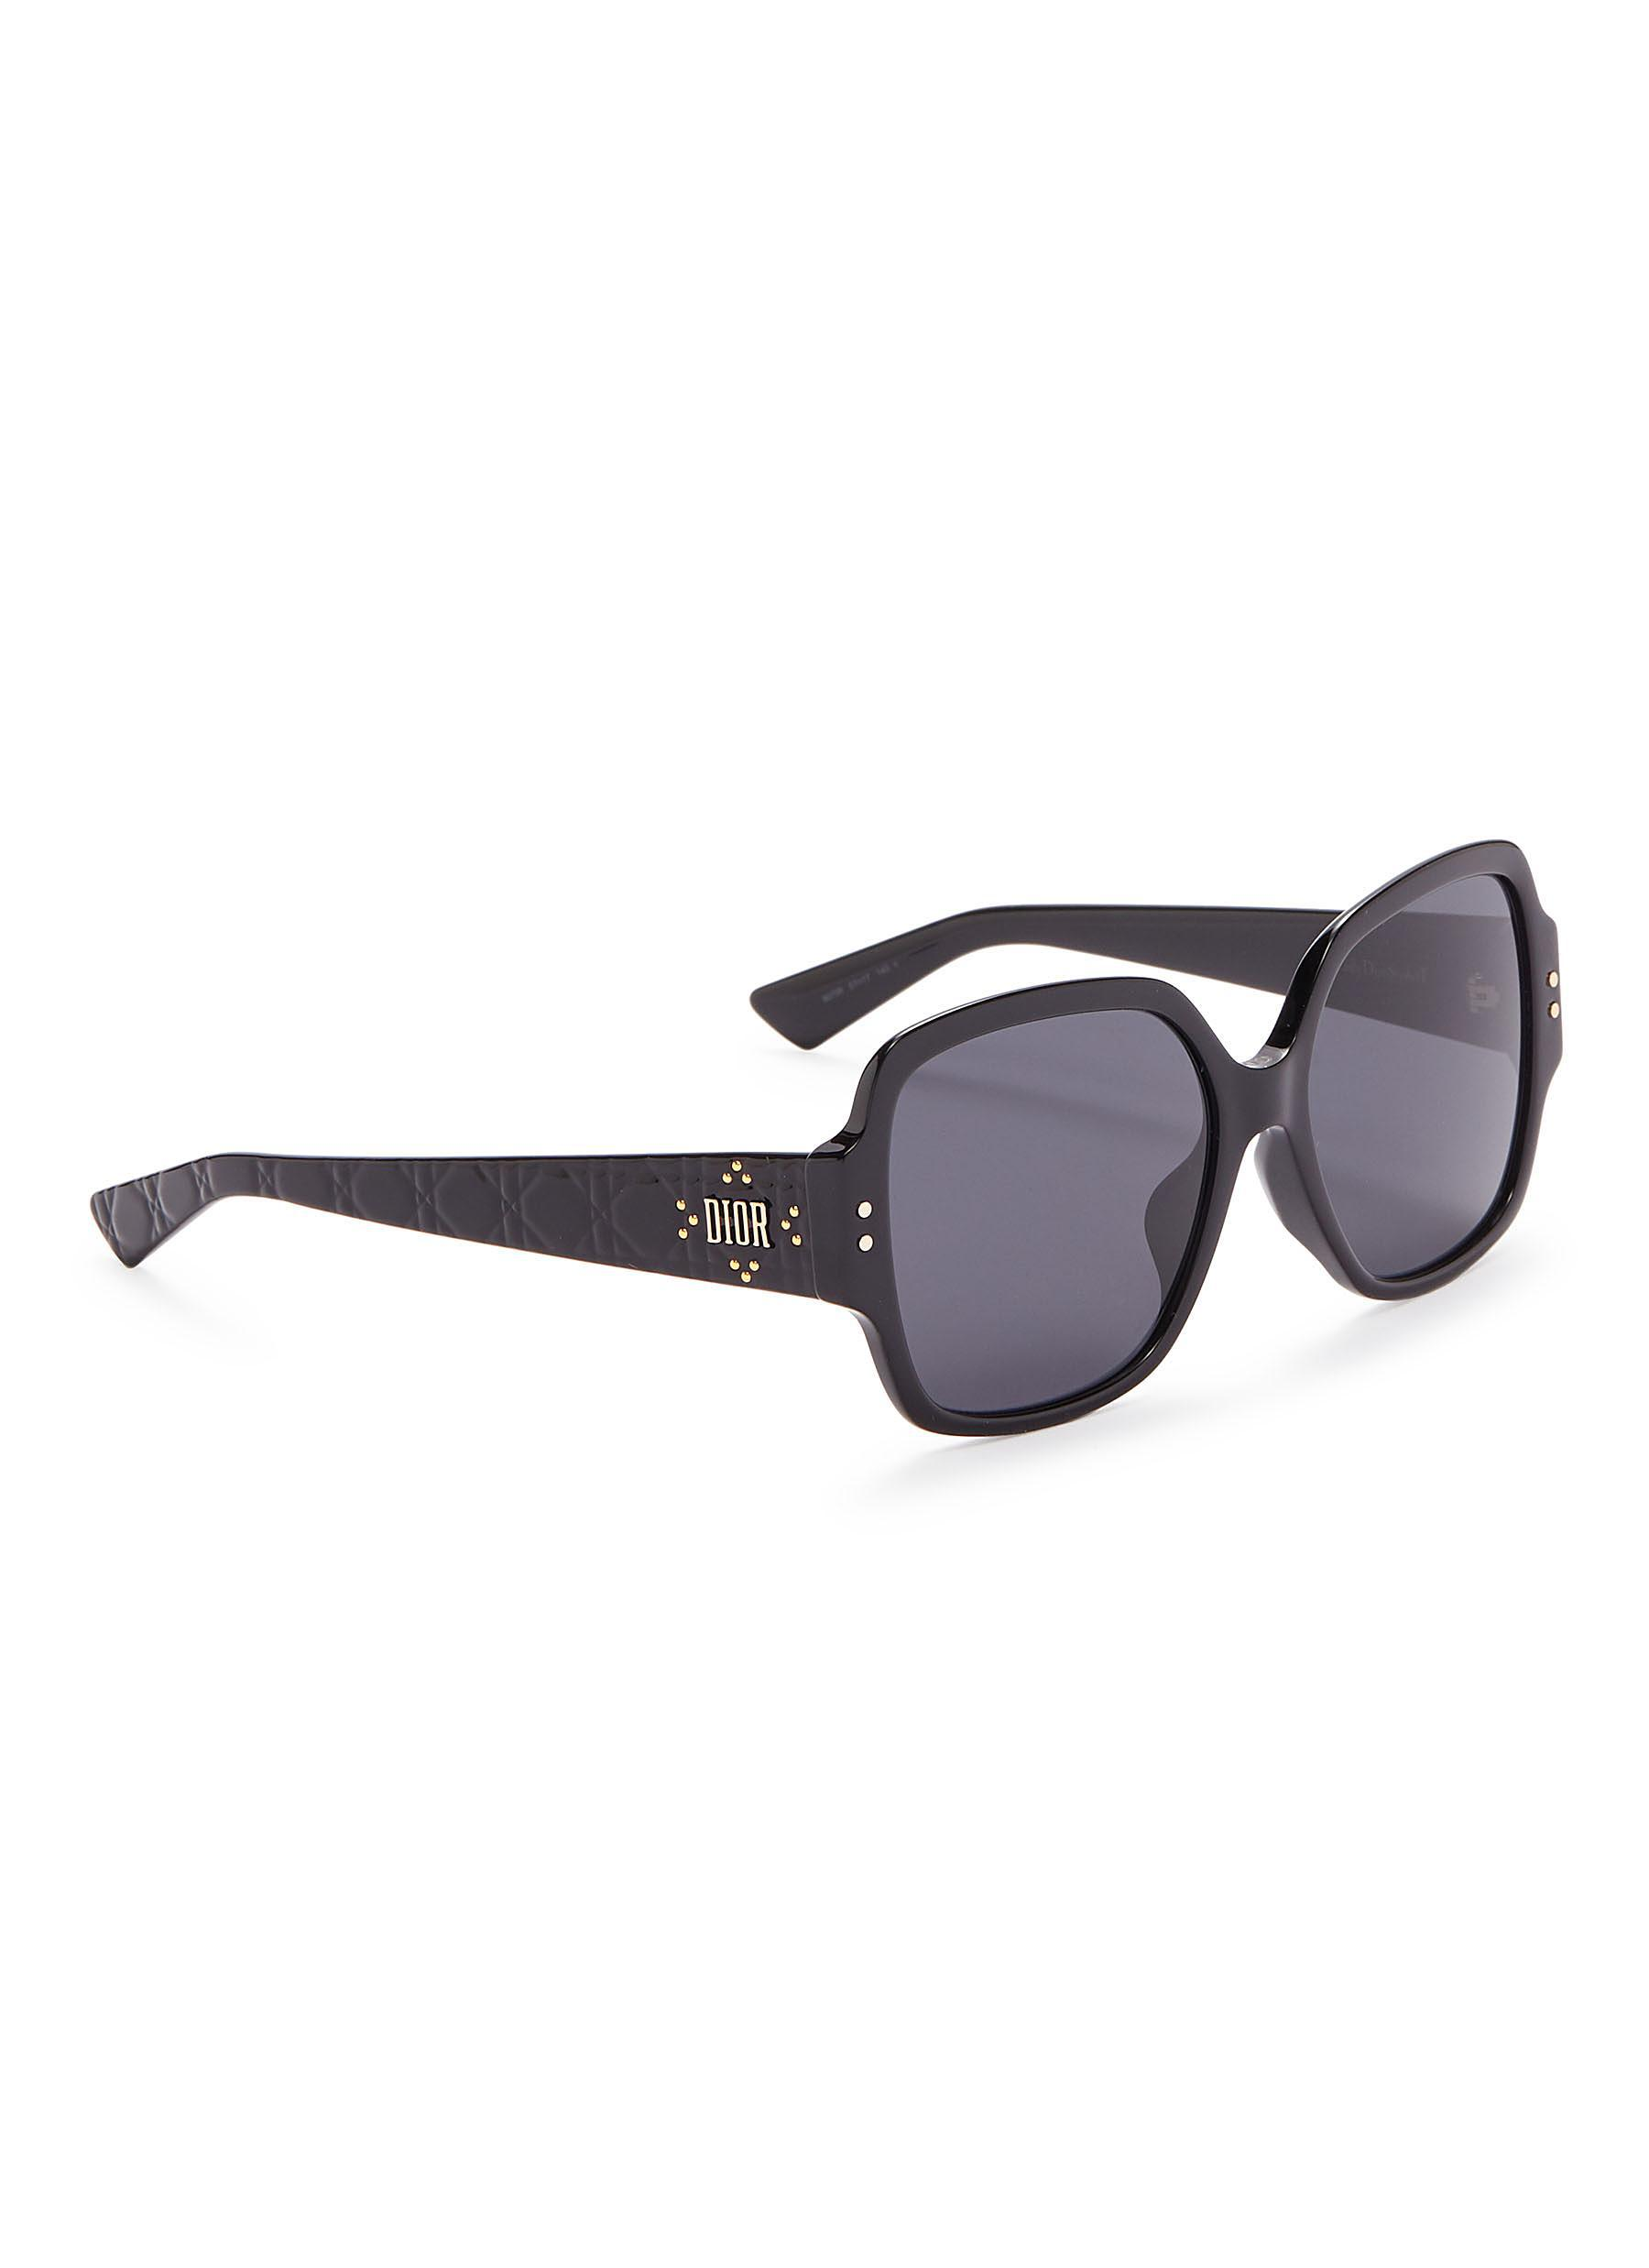 dd032f2ee08 Dior - Black  lady Studs  Acetate Square Sunglasses - Lyst. View fullscreen